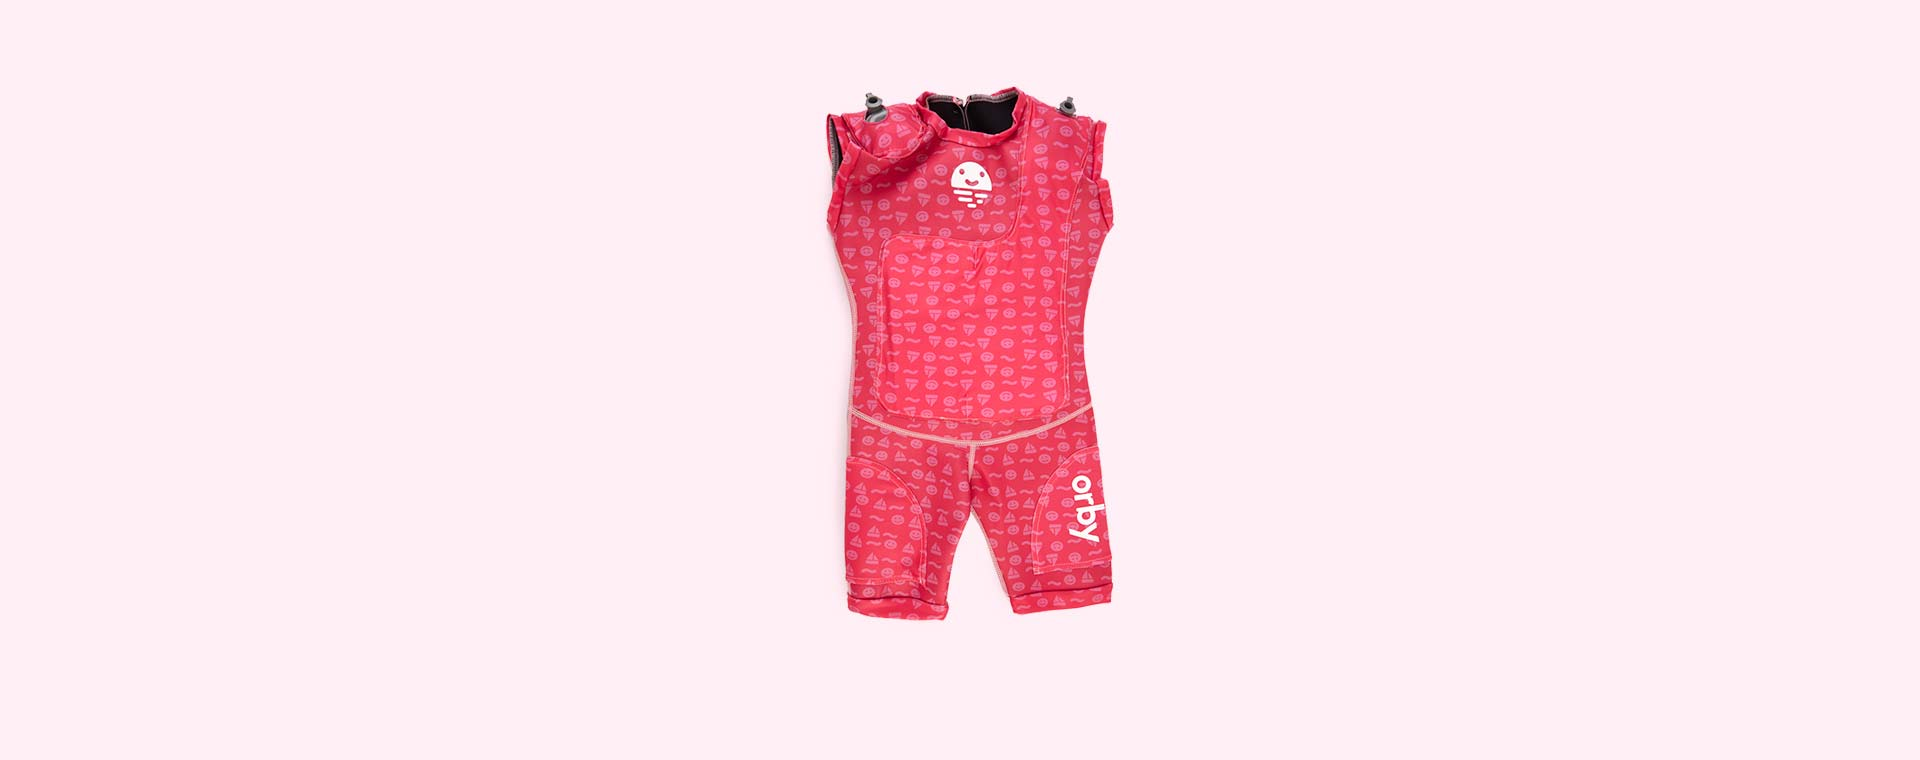 Pink Orby Jetsuit